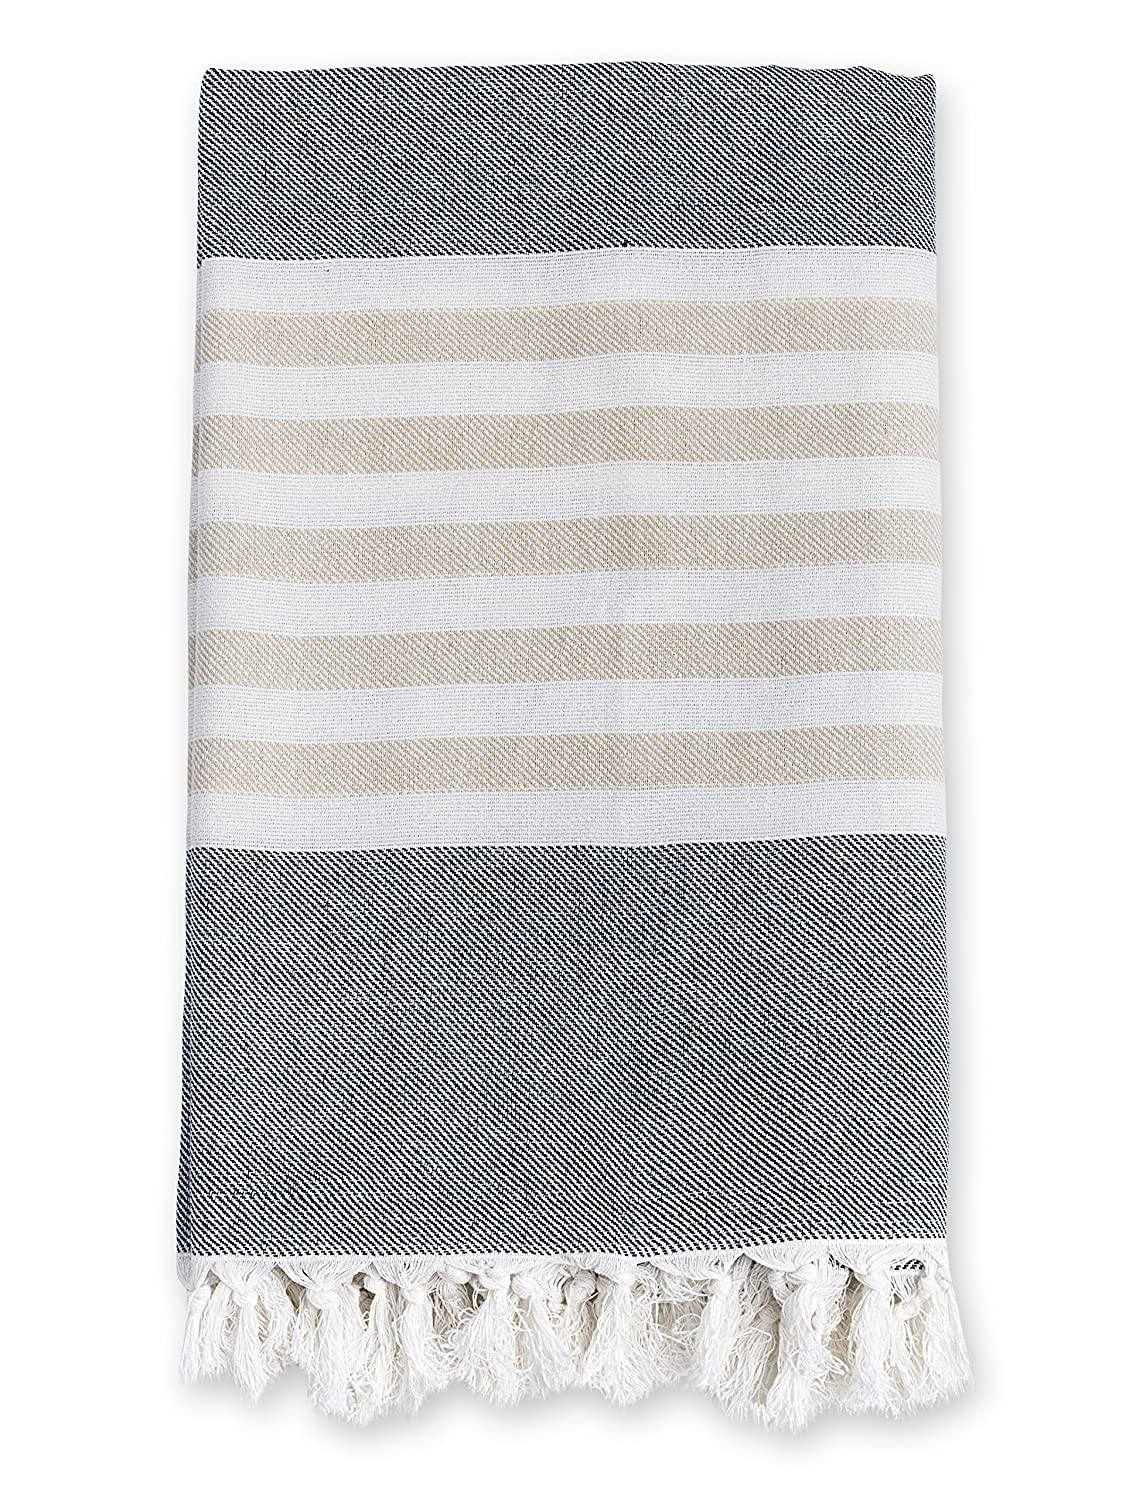 Lulujo Turkish Towel, Classic Navy and Oatmeal, Grey, One Size LJ701